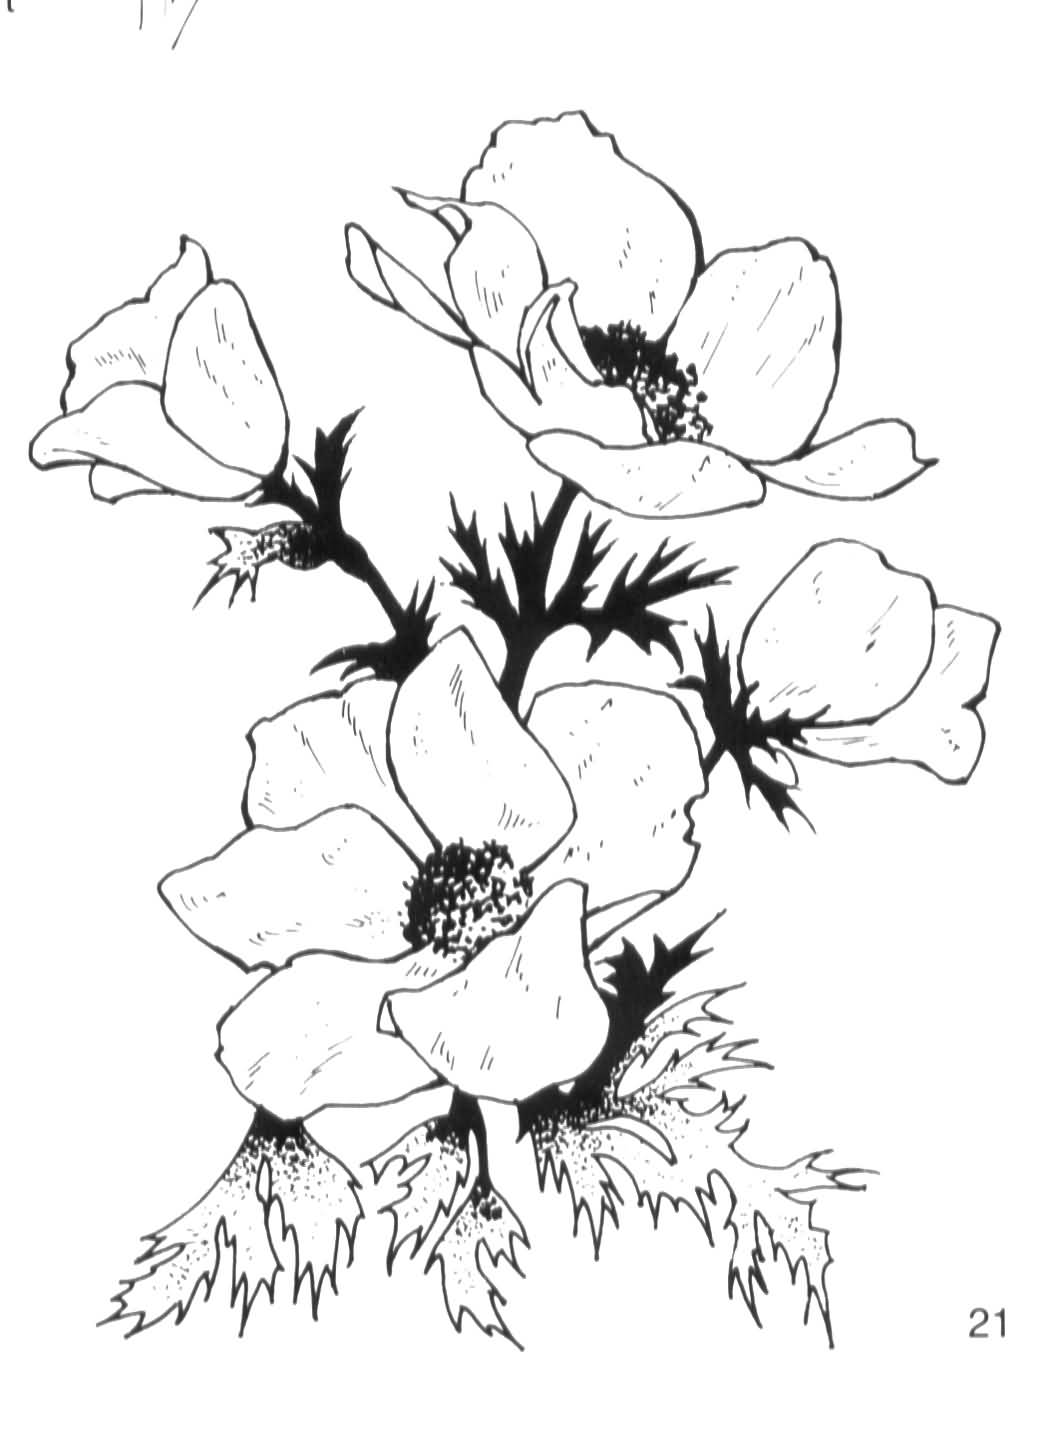 Japanese anemone flower meaning segerios segerios stunning black and white flower anemone graphic idea mightylinksfo Image collections